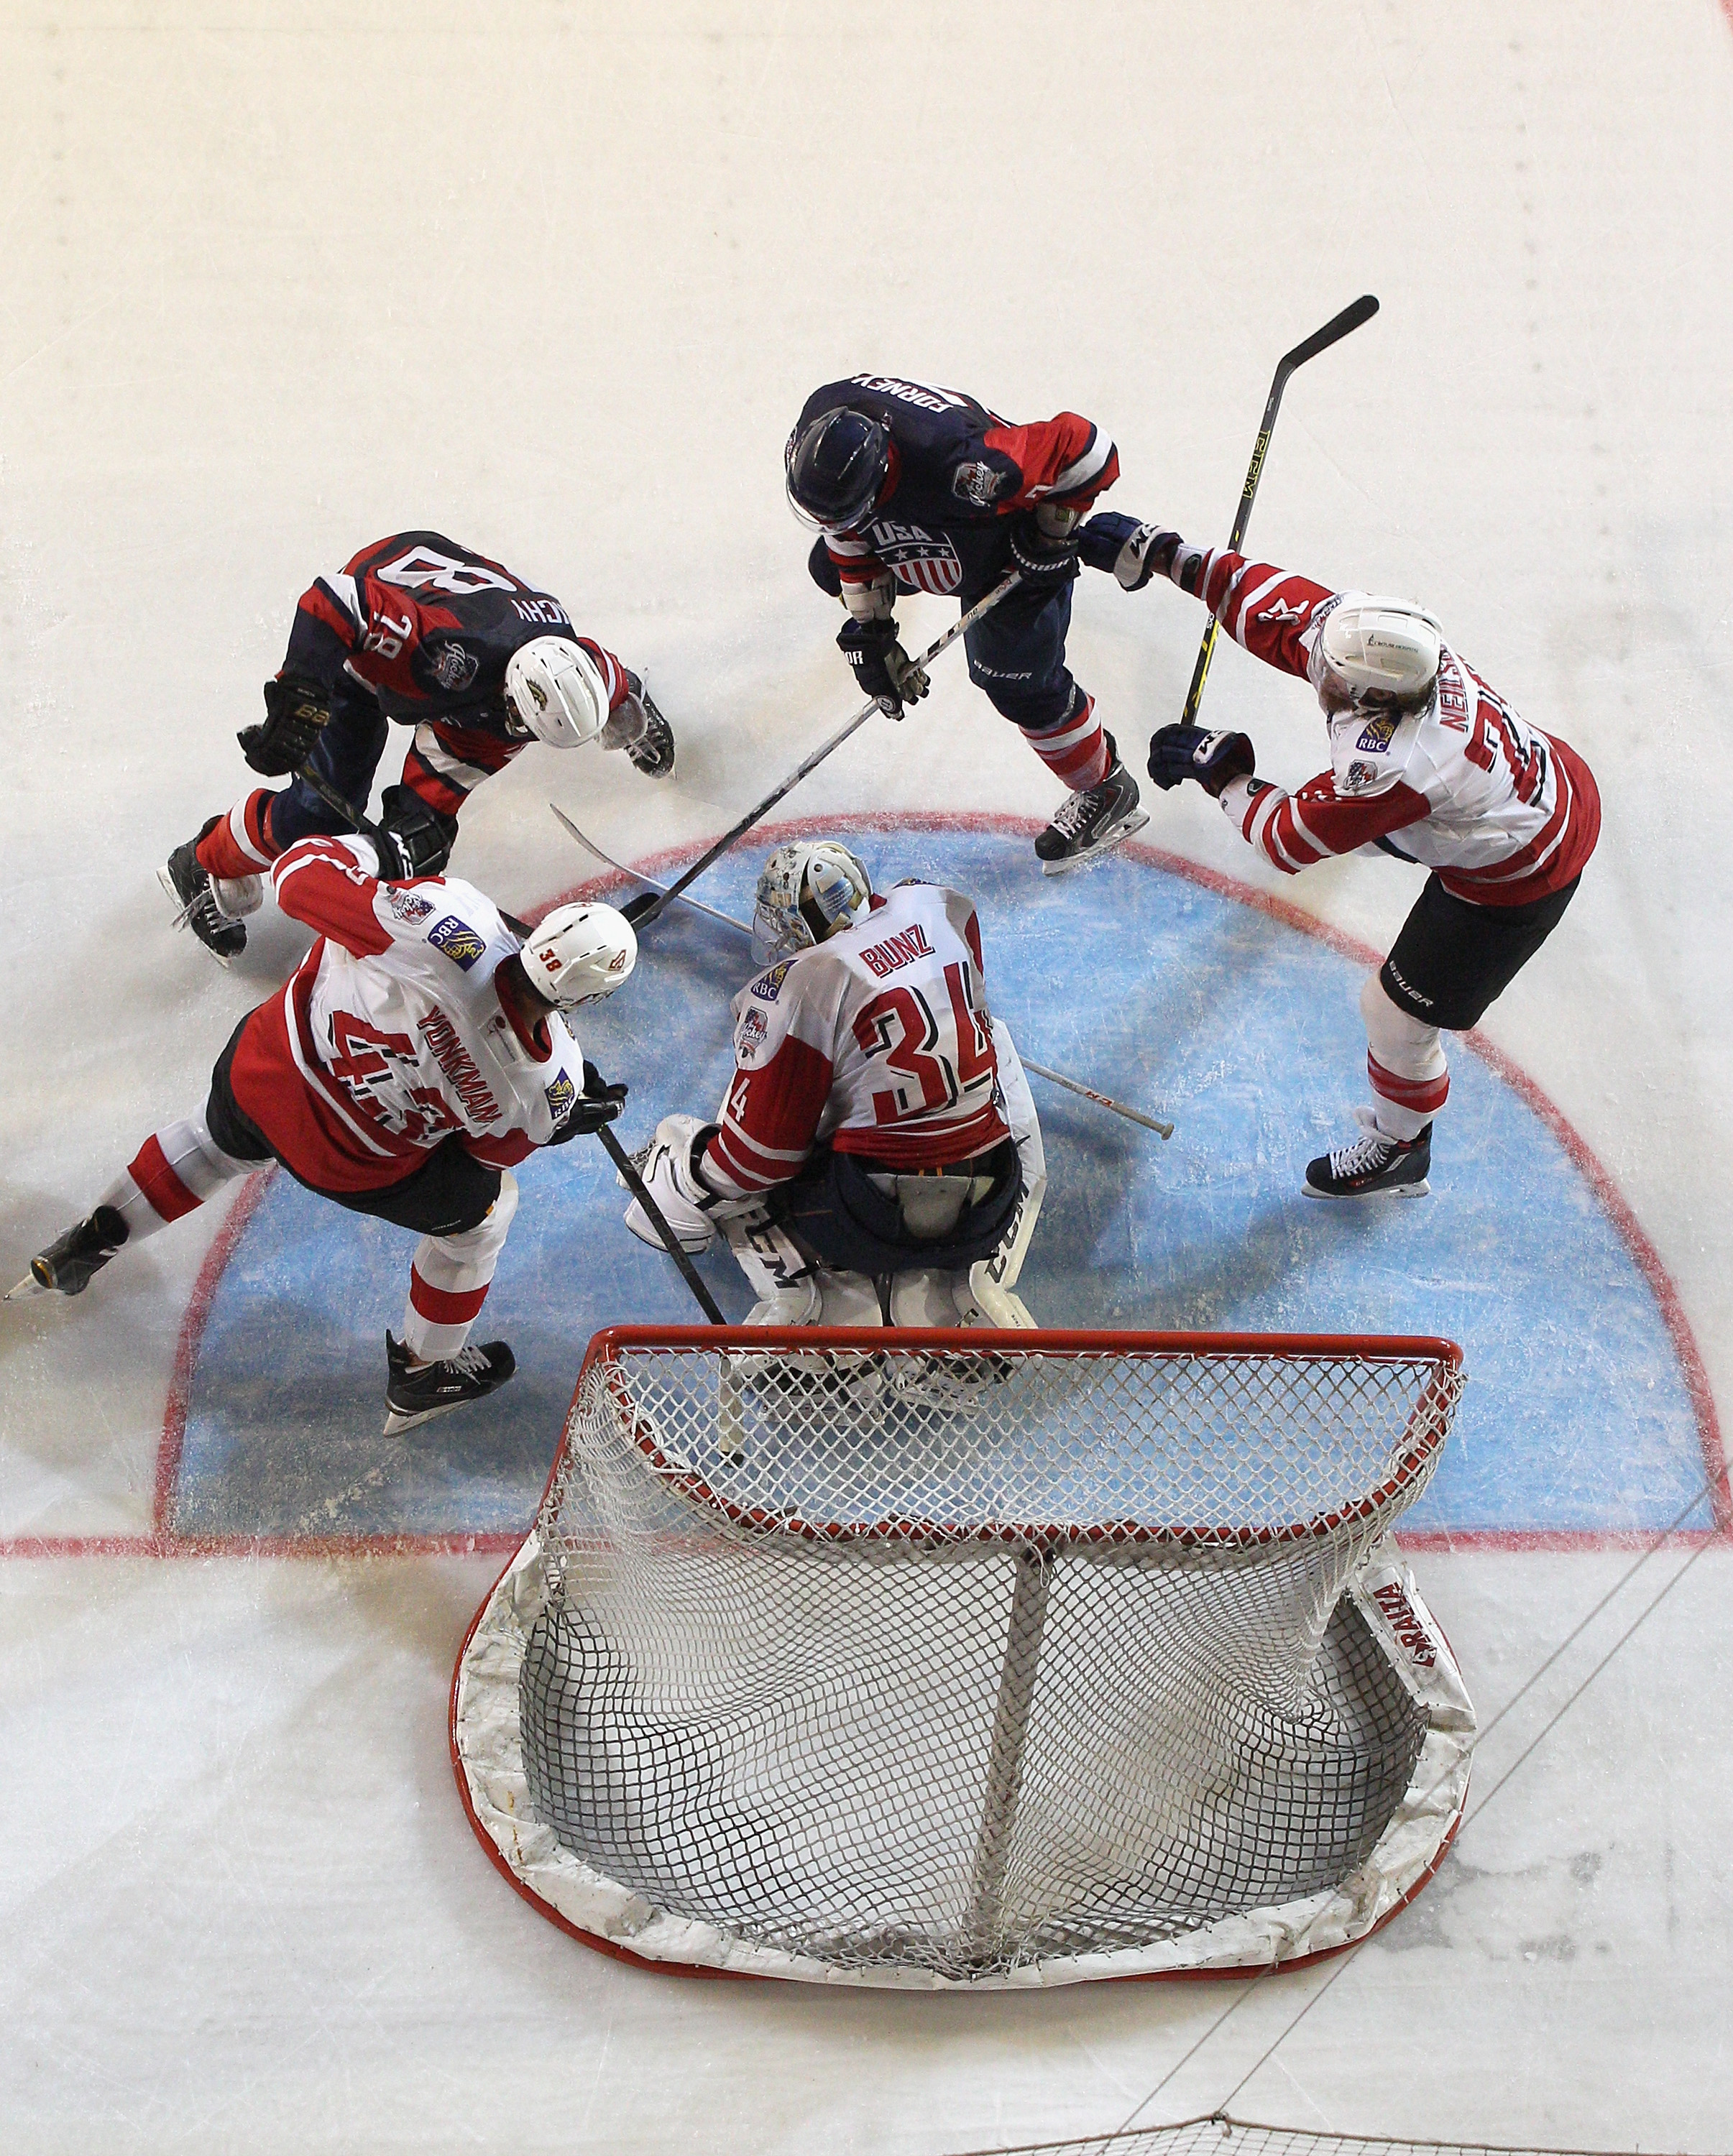 Tyler Bunz of Canada saves a shot on goal during the 2015 Ice Hockey Classic match between the United States of America and Canada at Rod Laver Arena on June 5, 2015 in Melbourne, Australia.